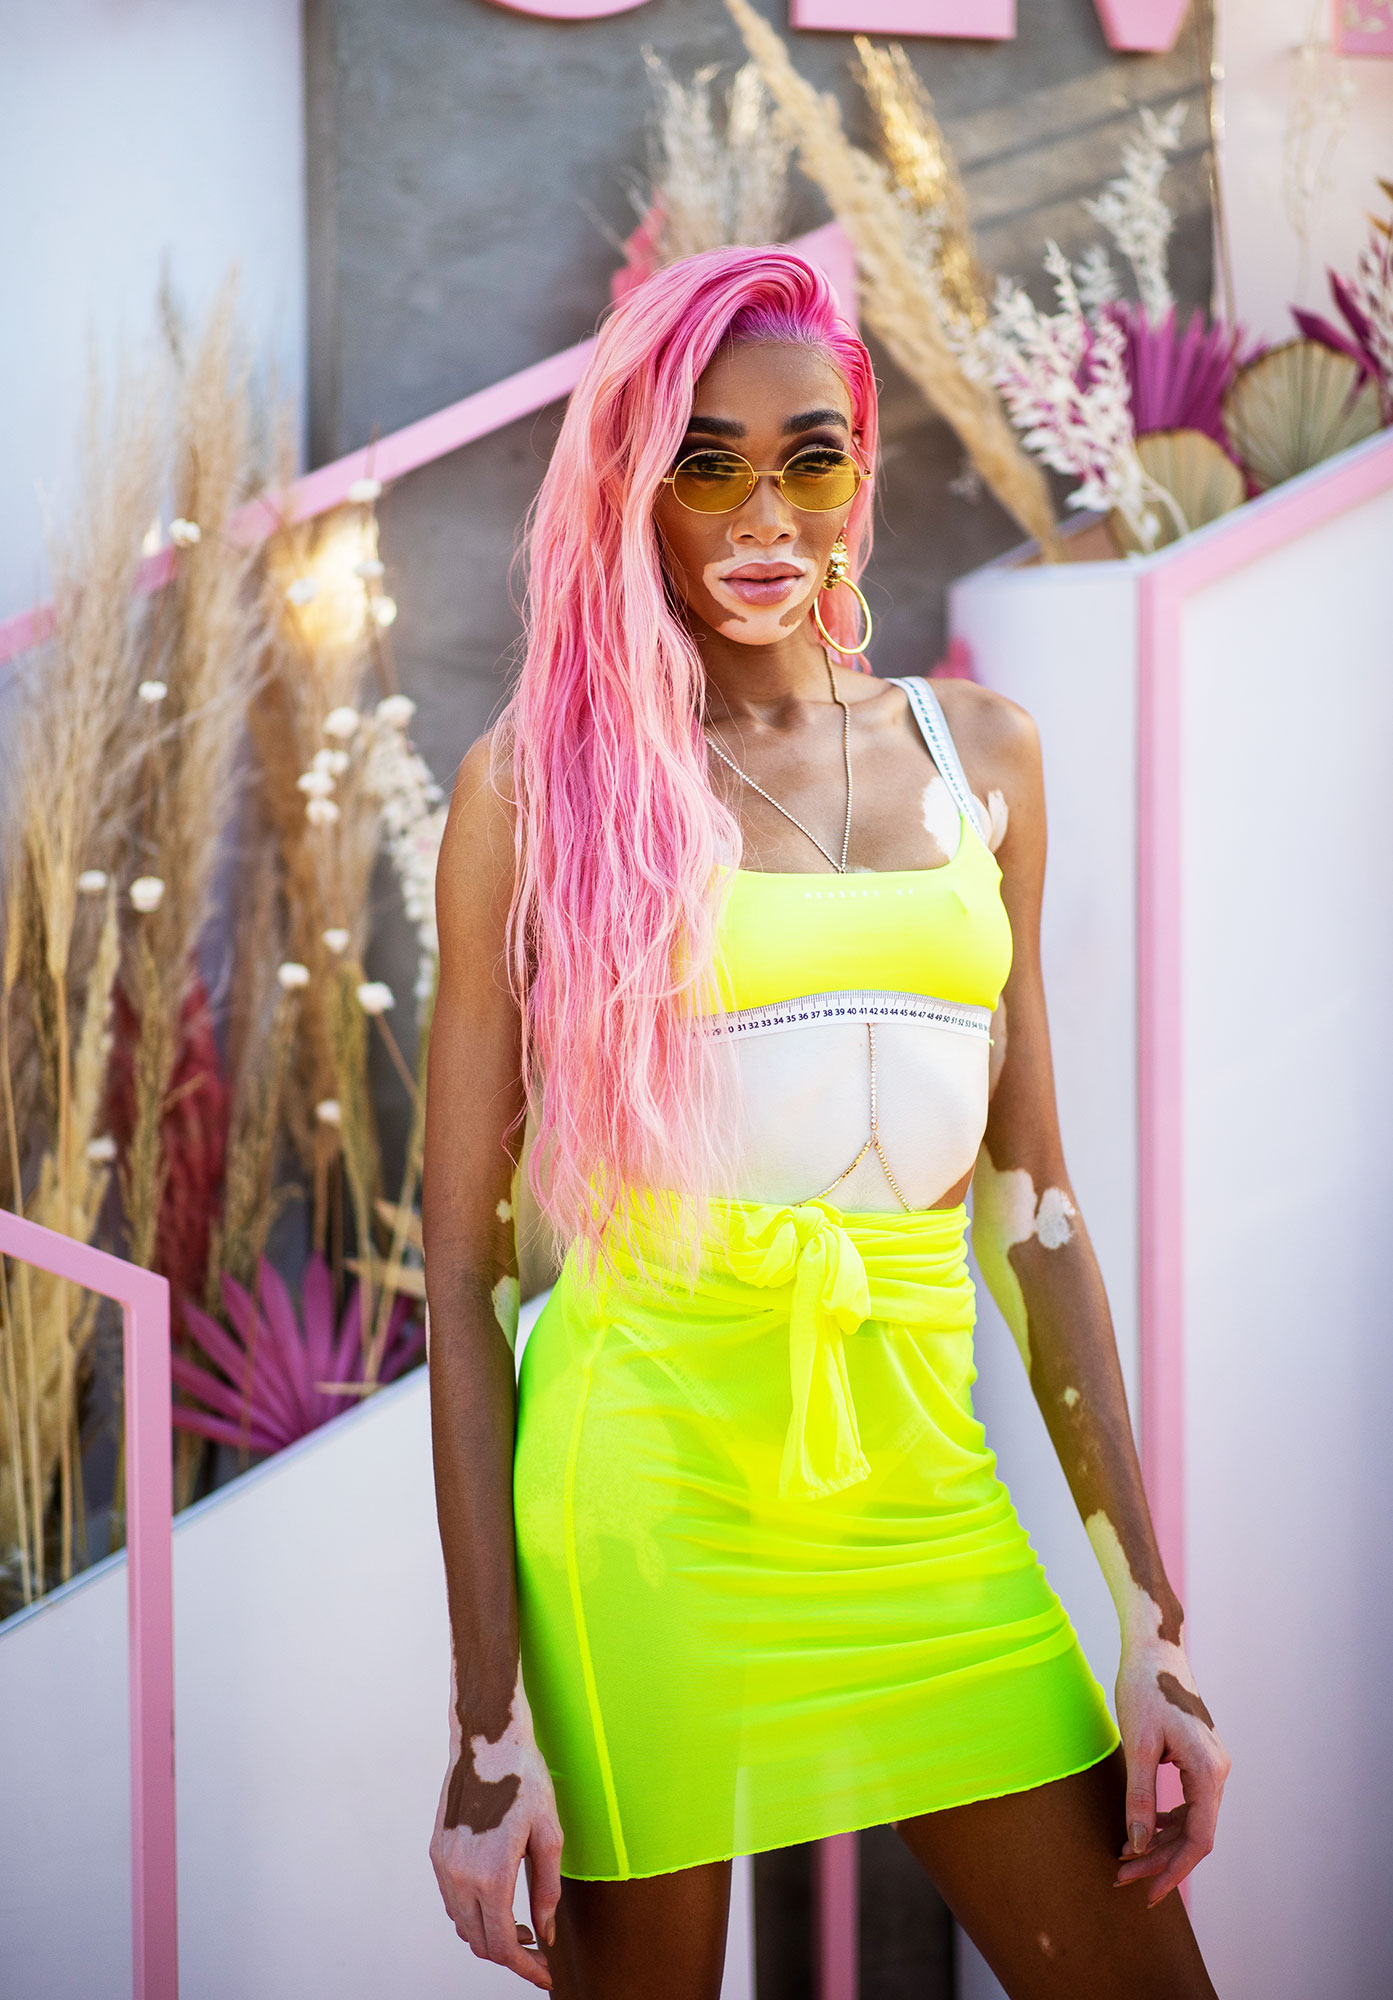 Winnie Harlow coachella 2019 hair makeup beauty - The Canadian model went all in on bright colors, wearing a neon miniskirt and crop top with brilliant pink strands that reached down to her waist.